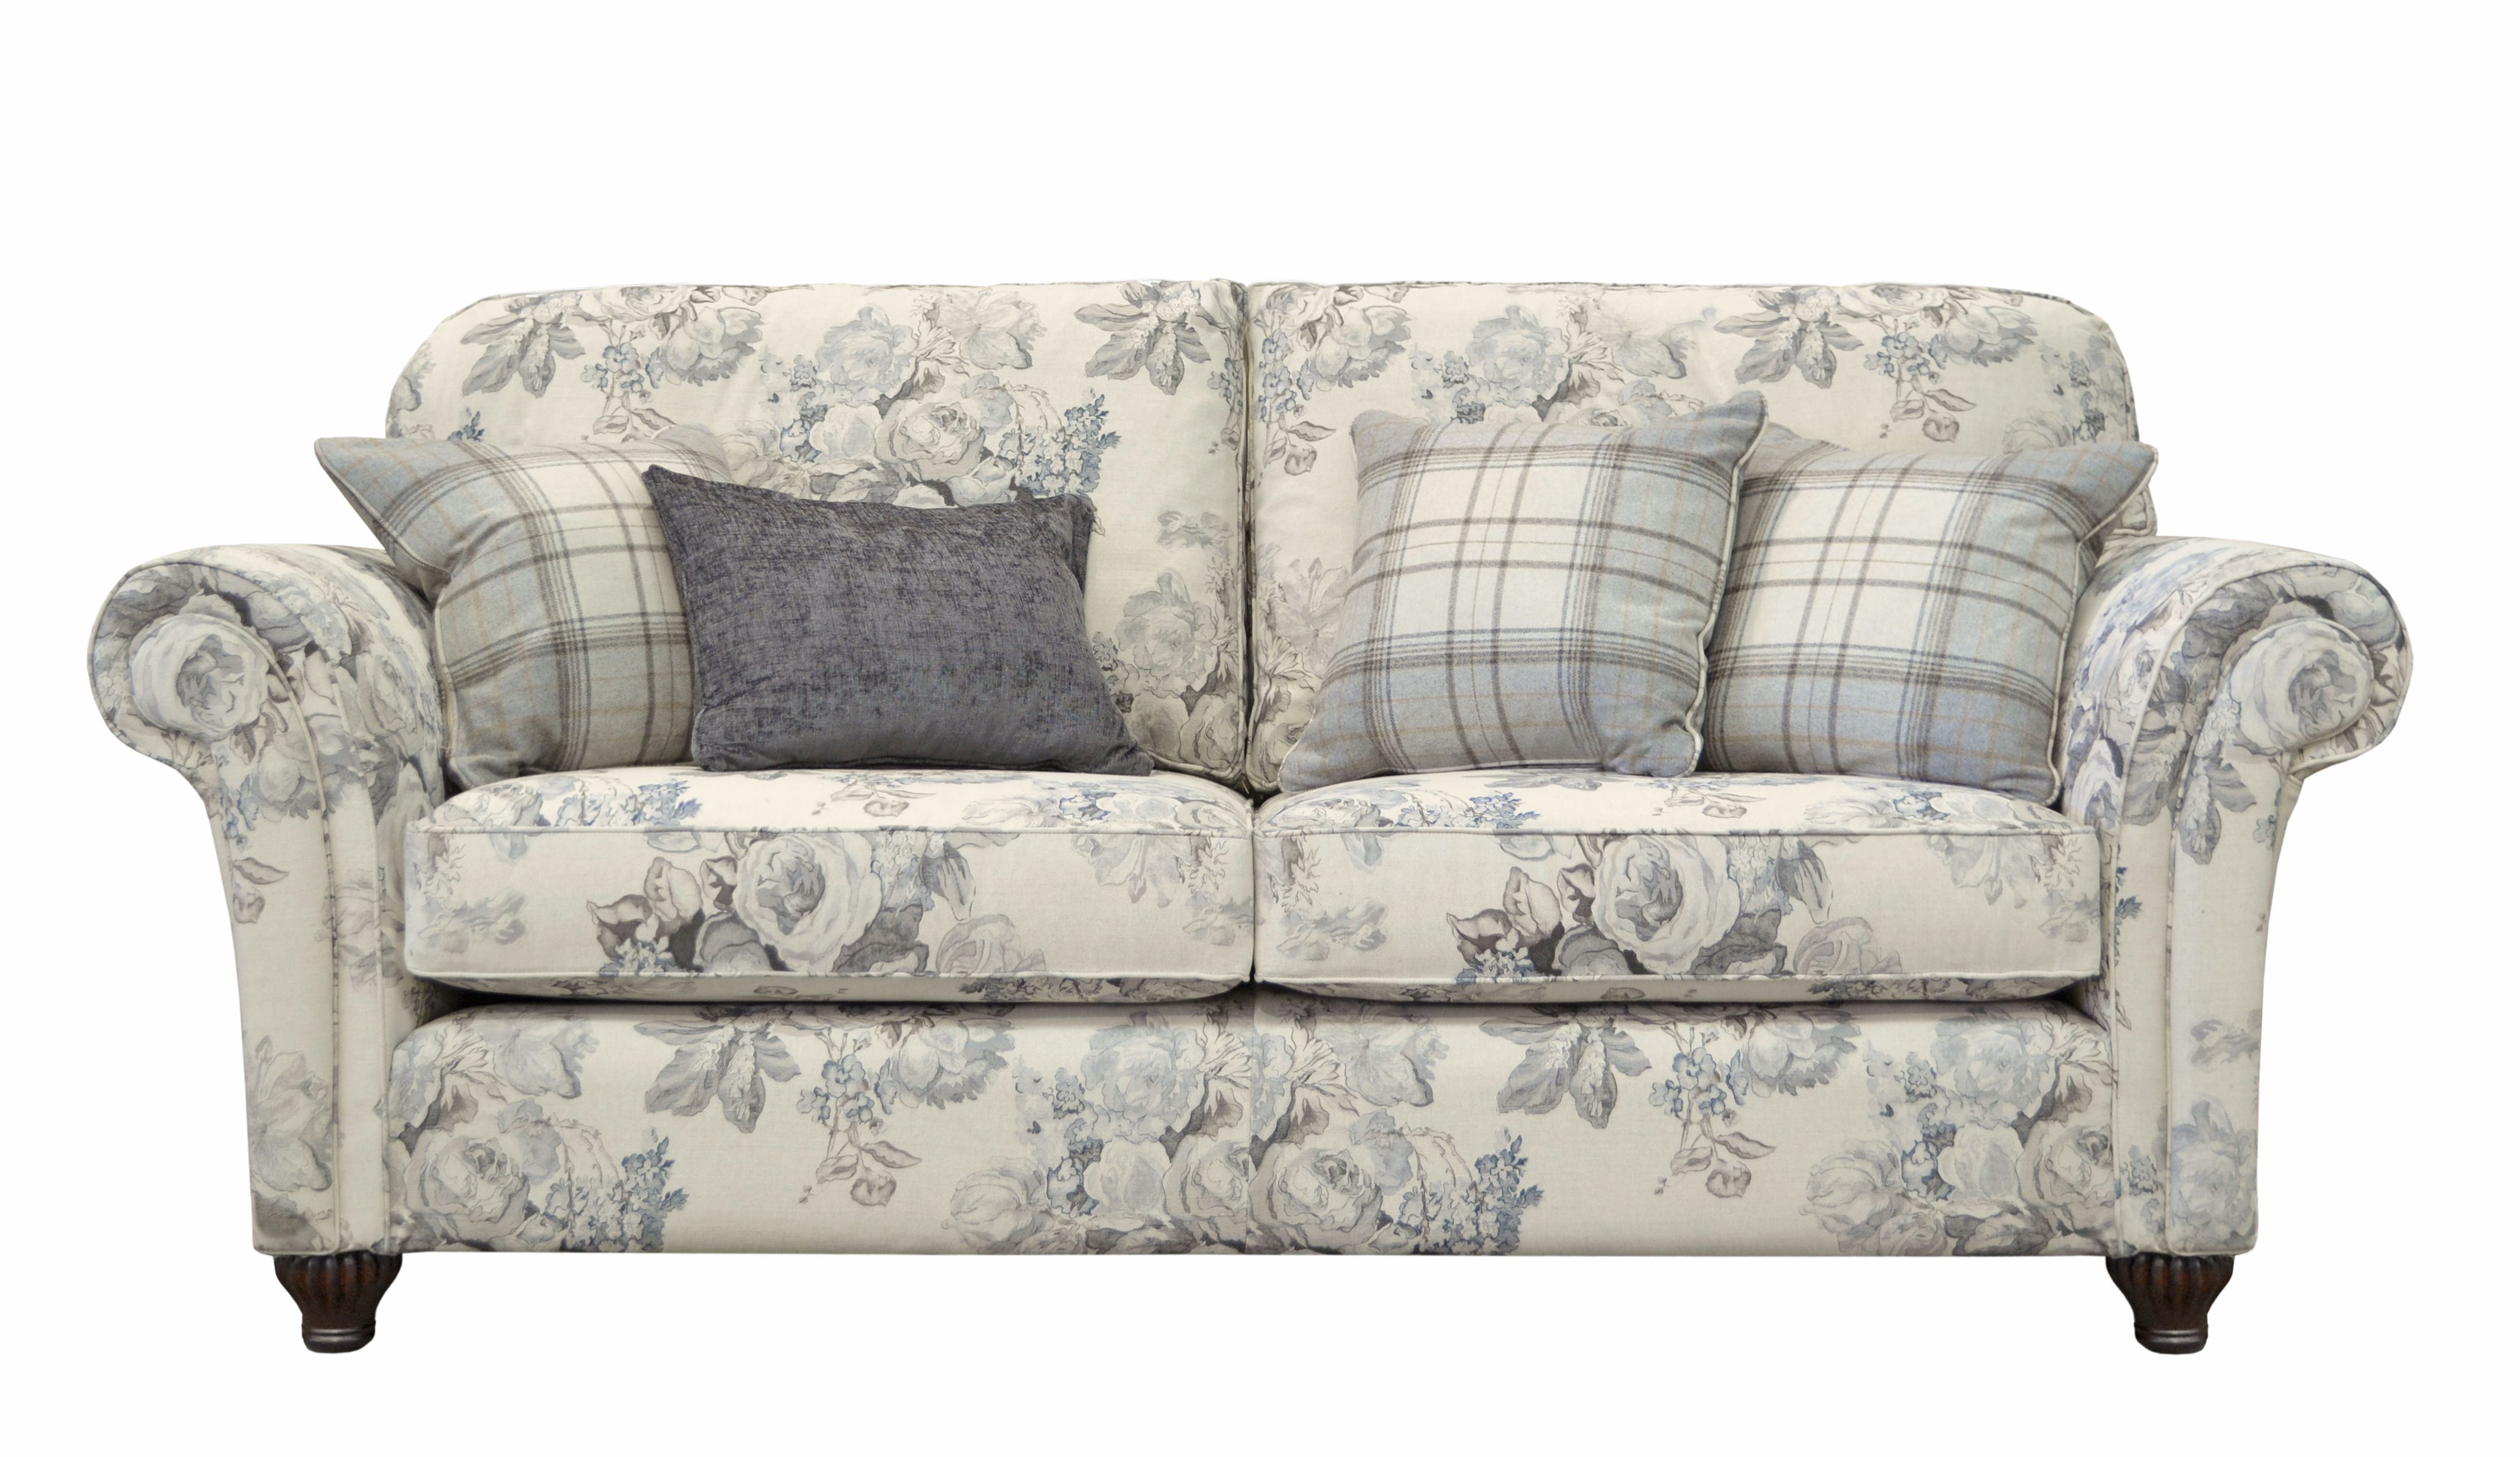 Pinholly Furney On I Love Interior Design! In 2018 | Pinterest For Tate Ii Sofa Chairs (View 4 of 20)